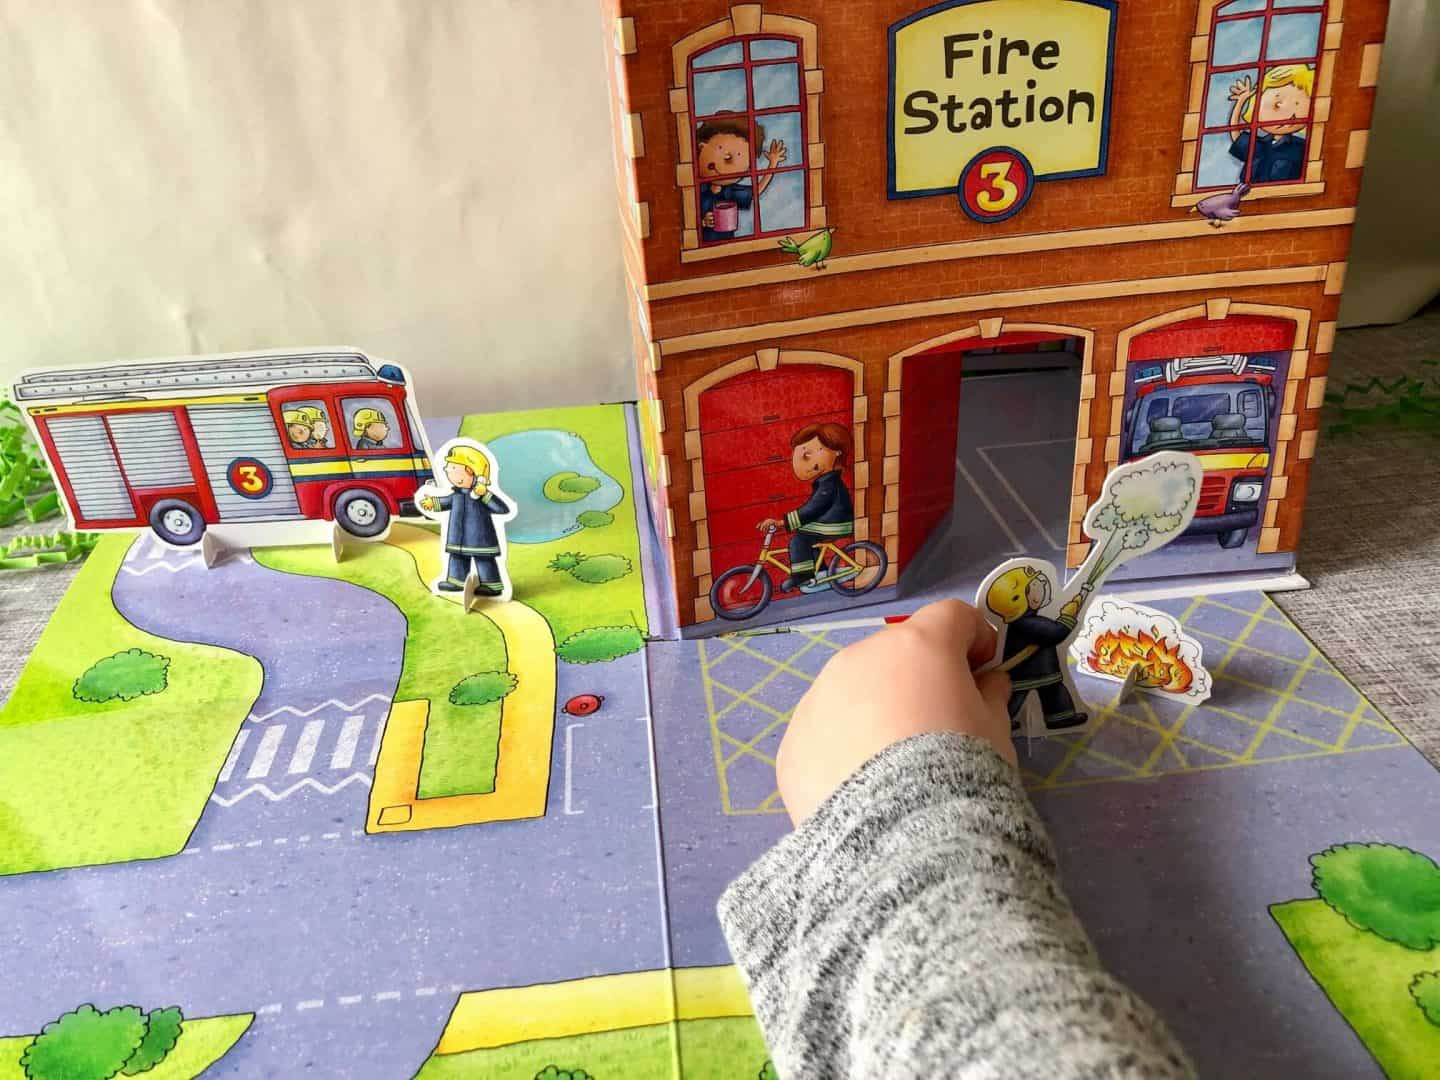 imaginative play with fire station